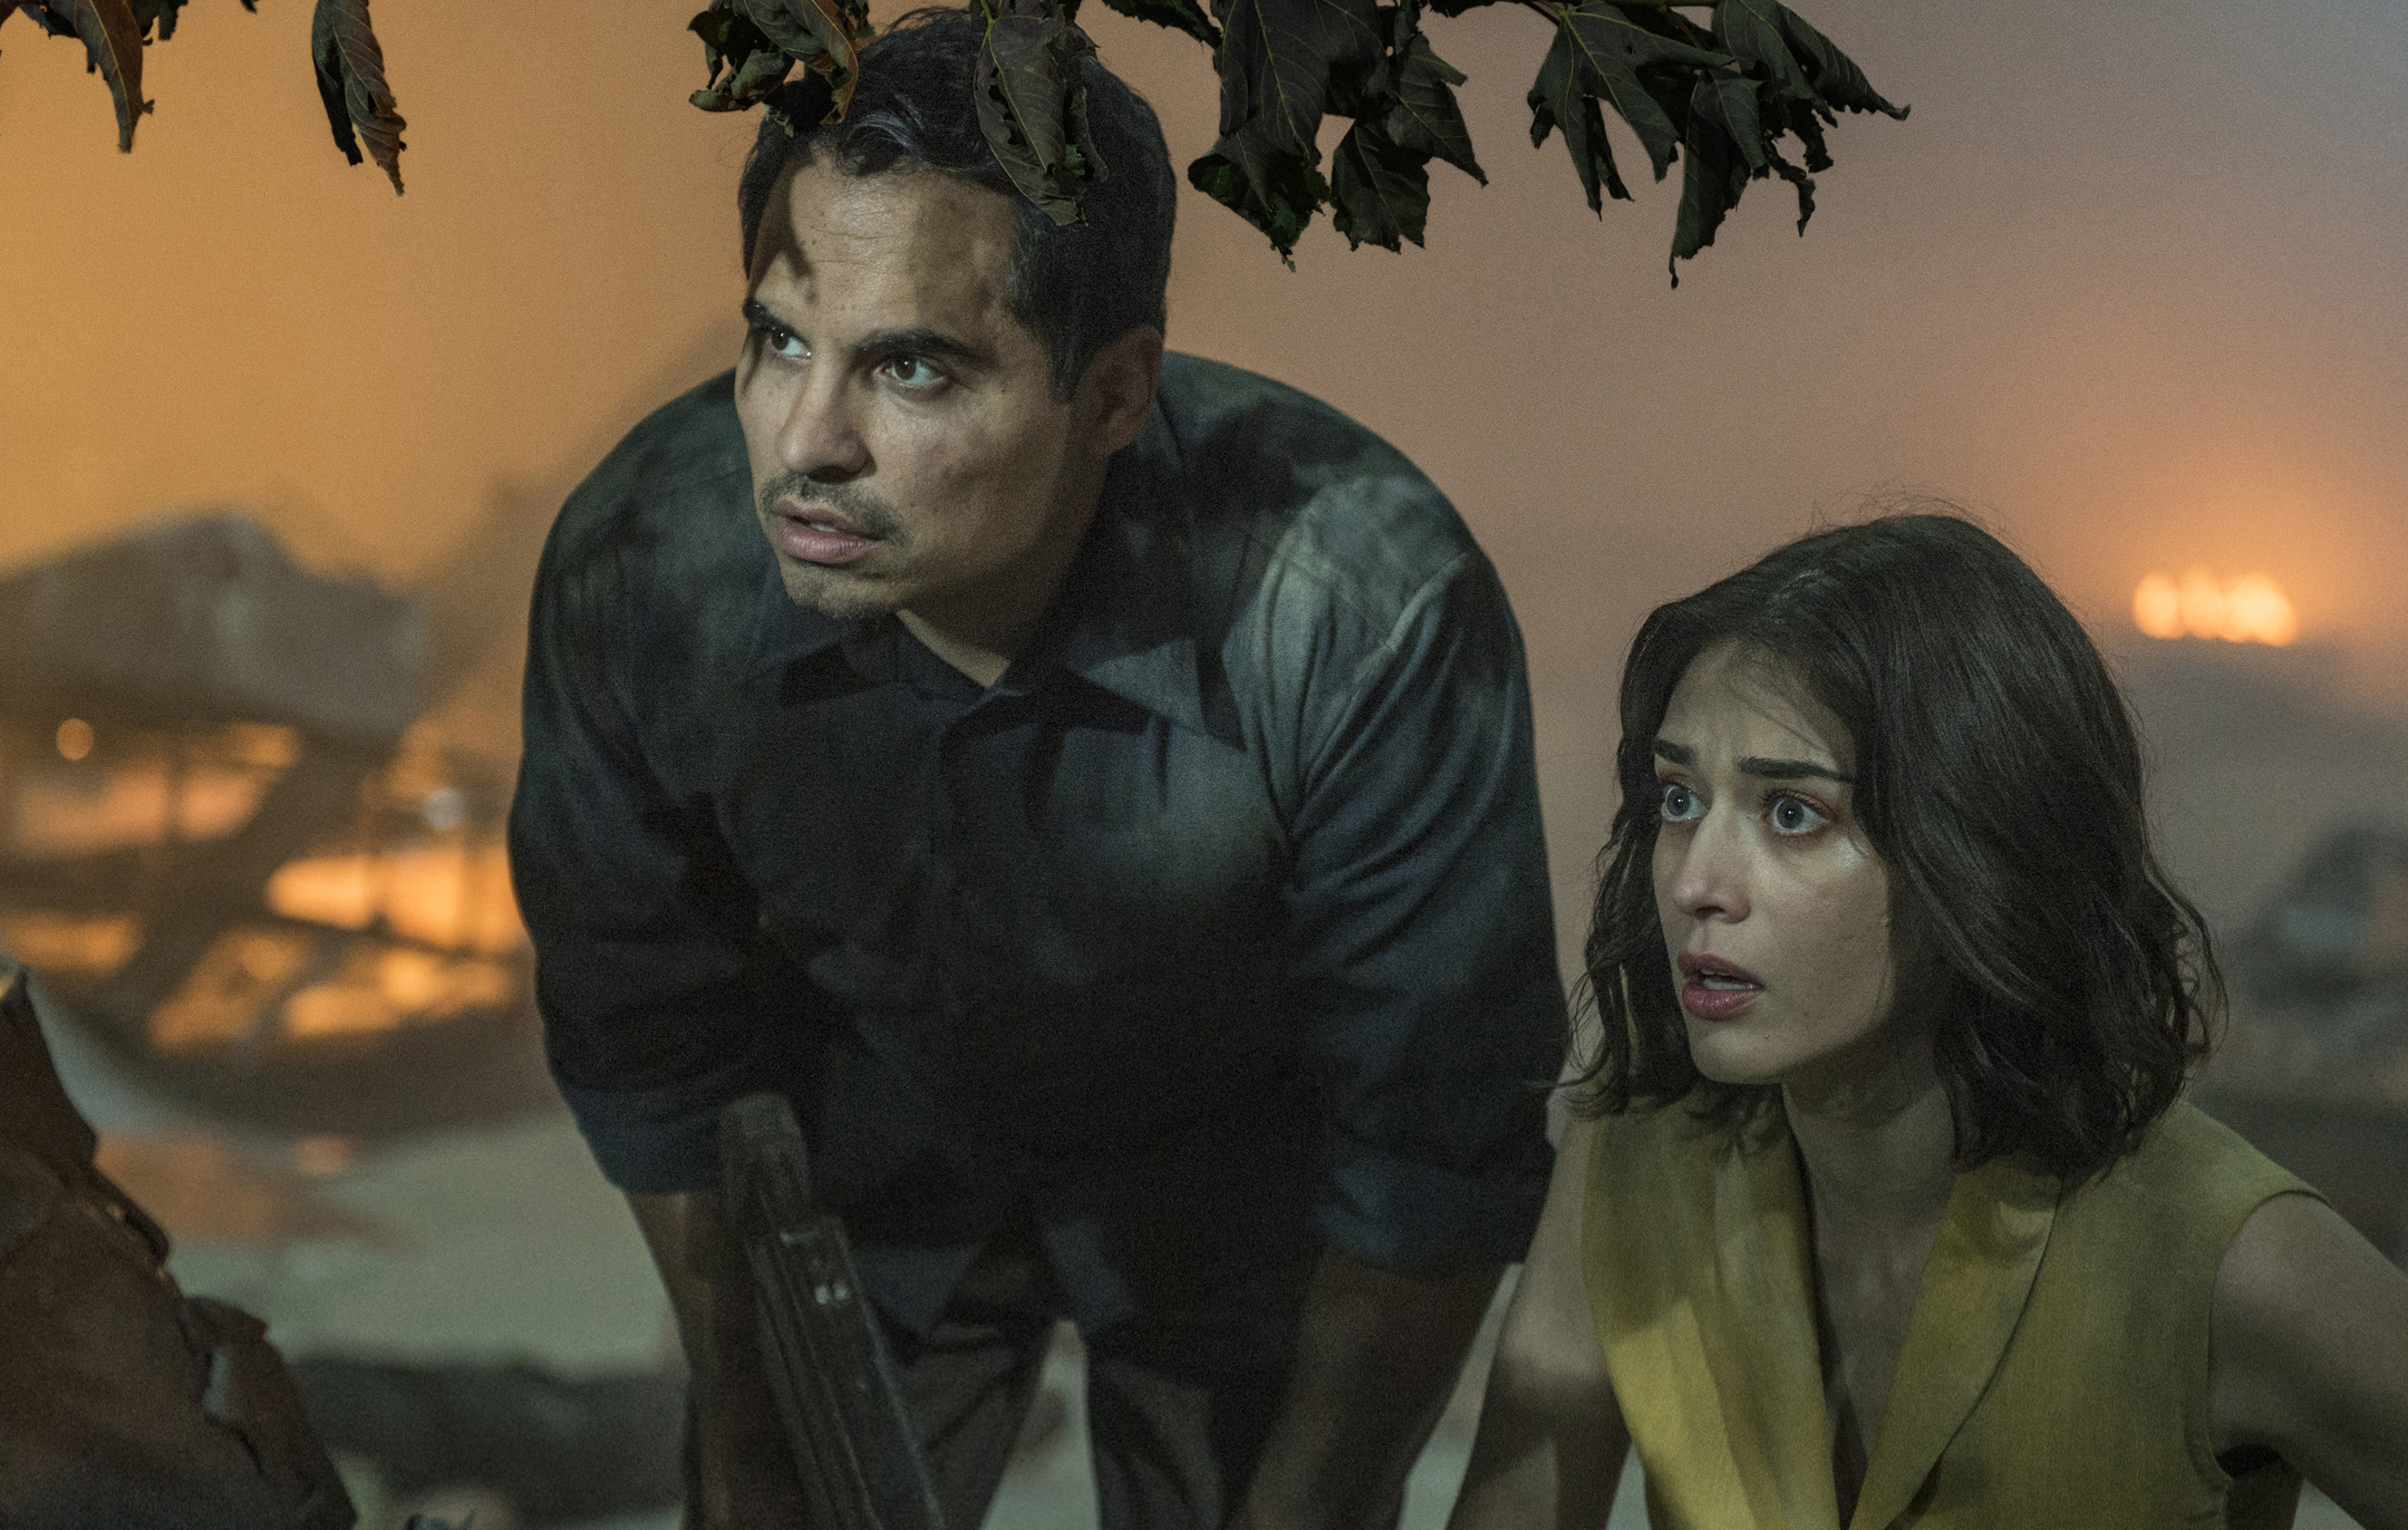 Michael Pena and Lizzy Caplan star in 'Extinction', due for global release on July 27 via Netflix.